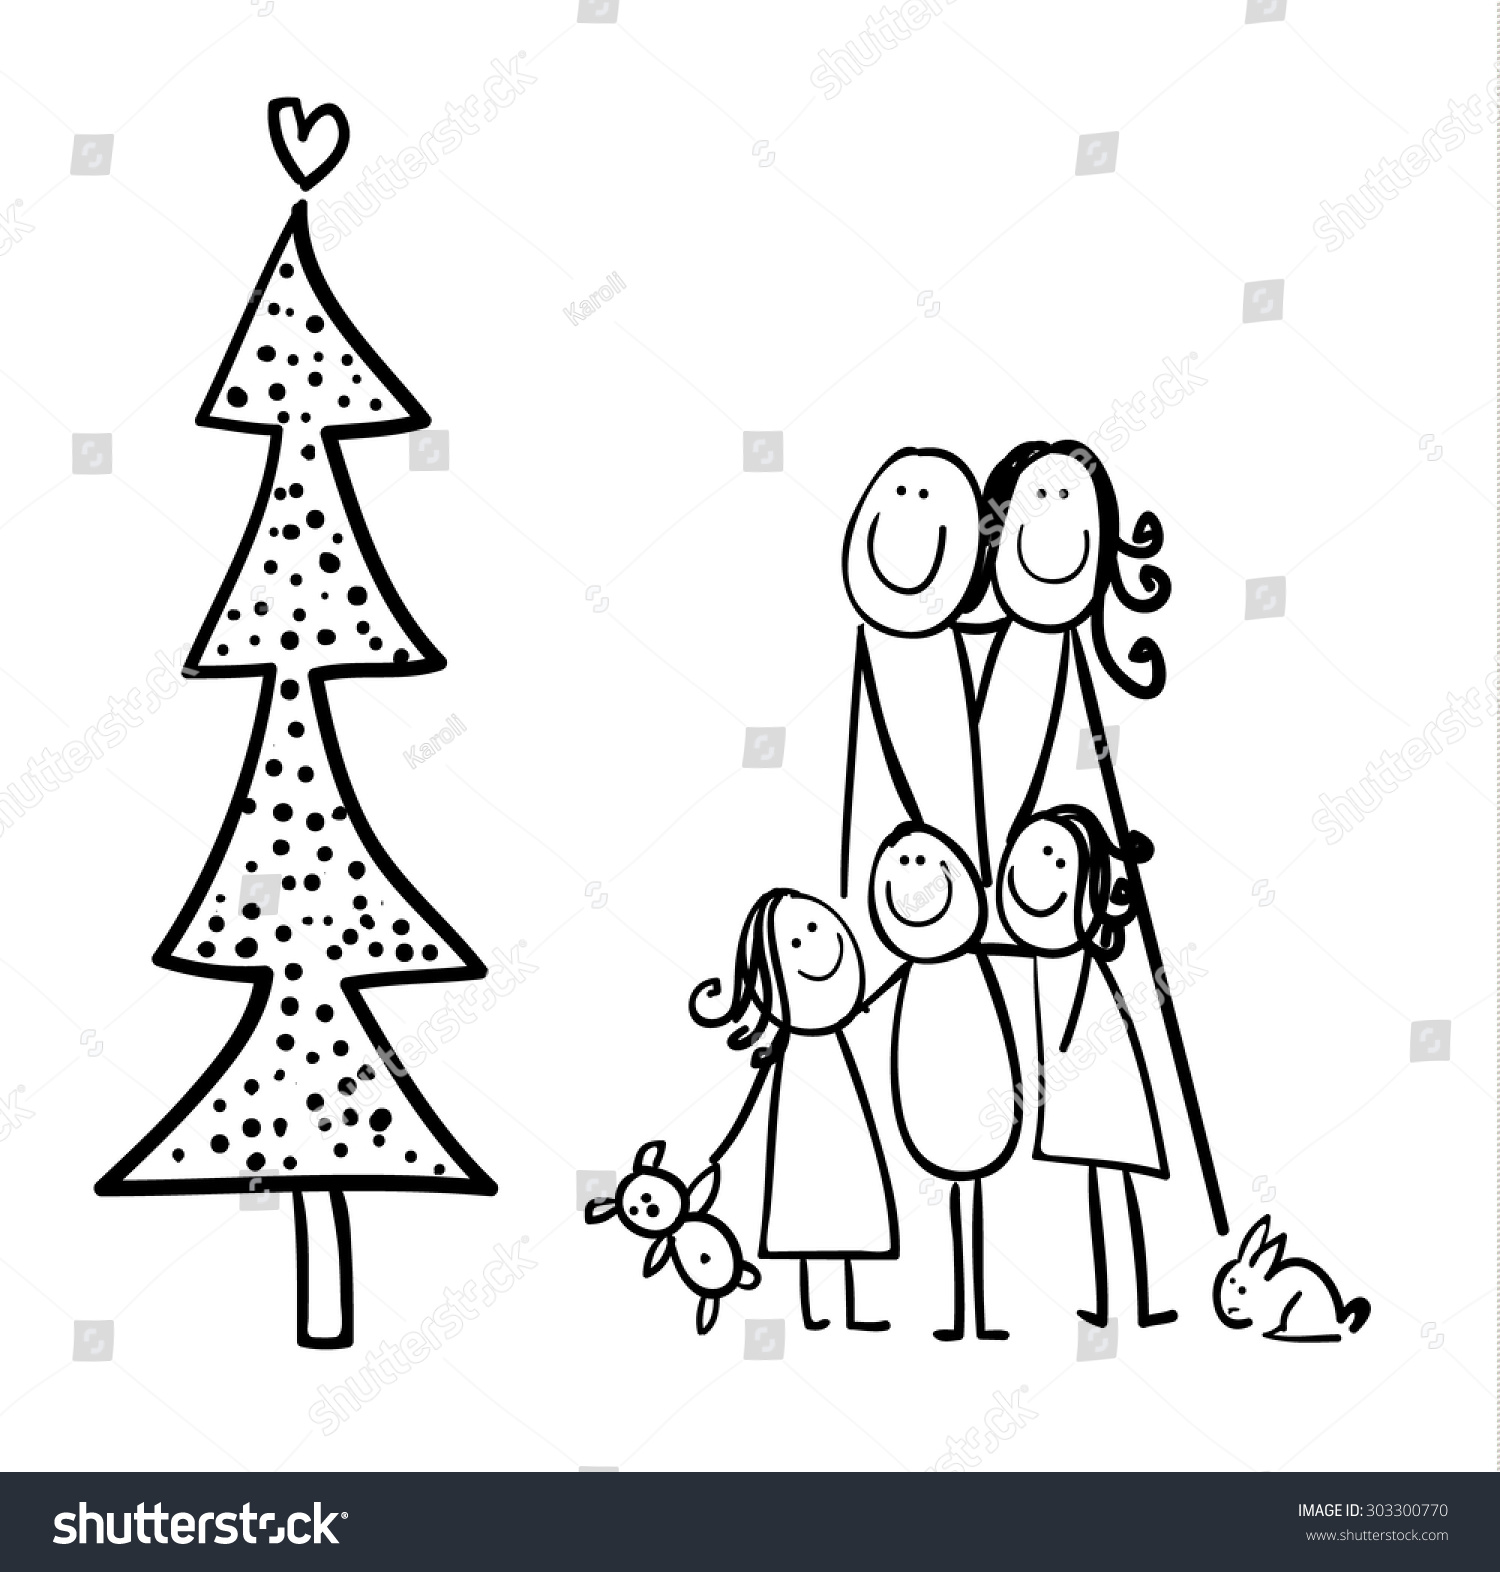 Line Drawing Christmas Tree : Hand line drawing cartoon stick figures stock illustration